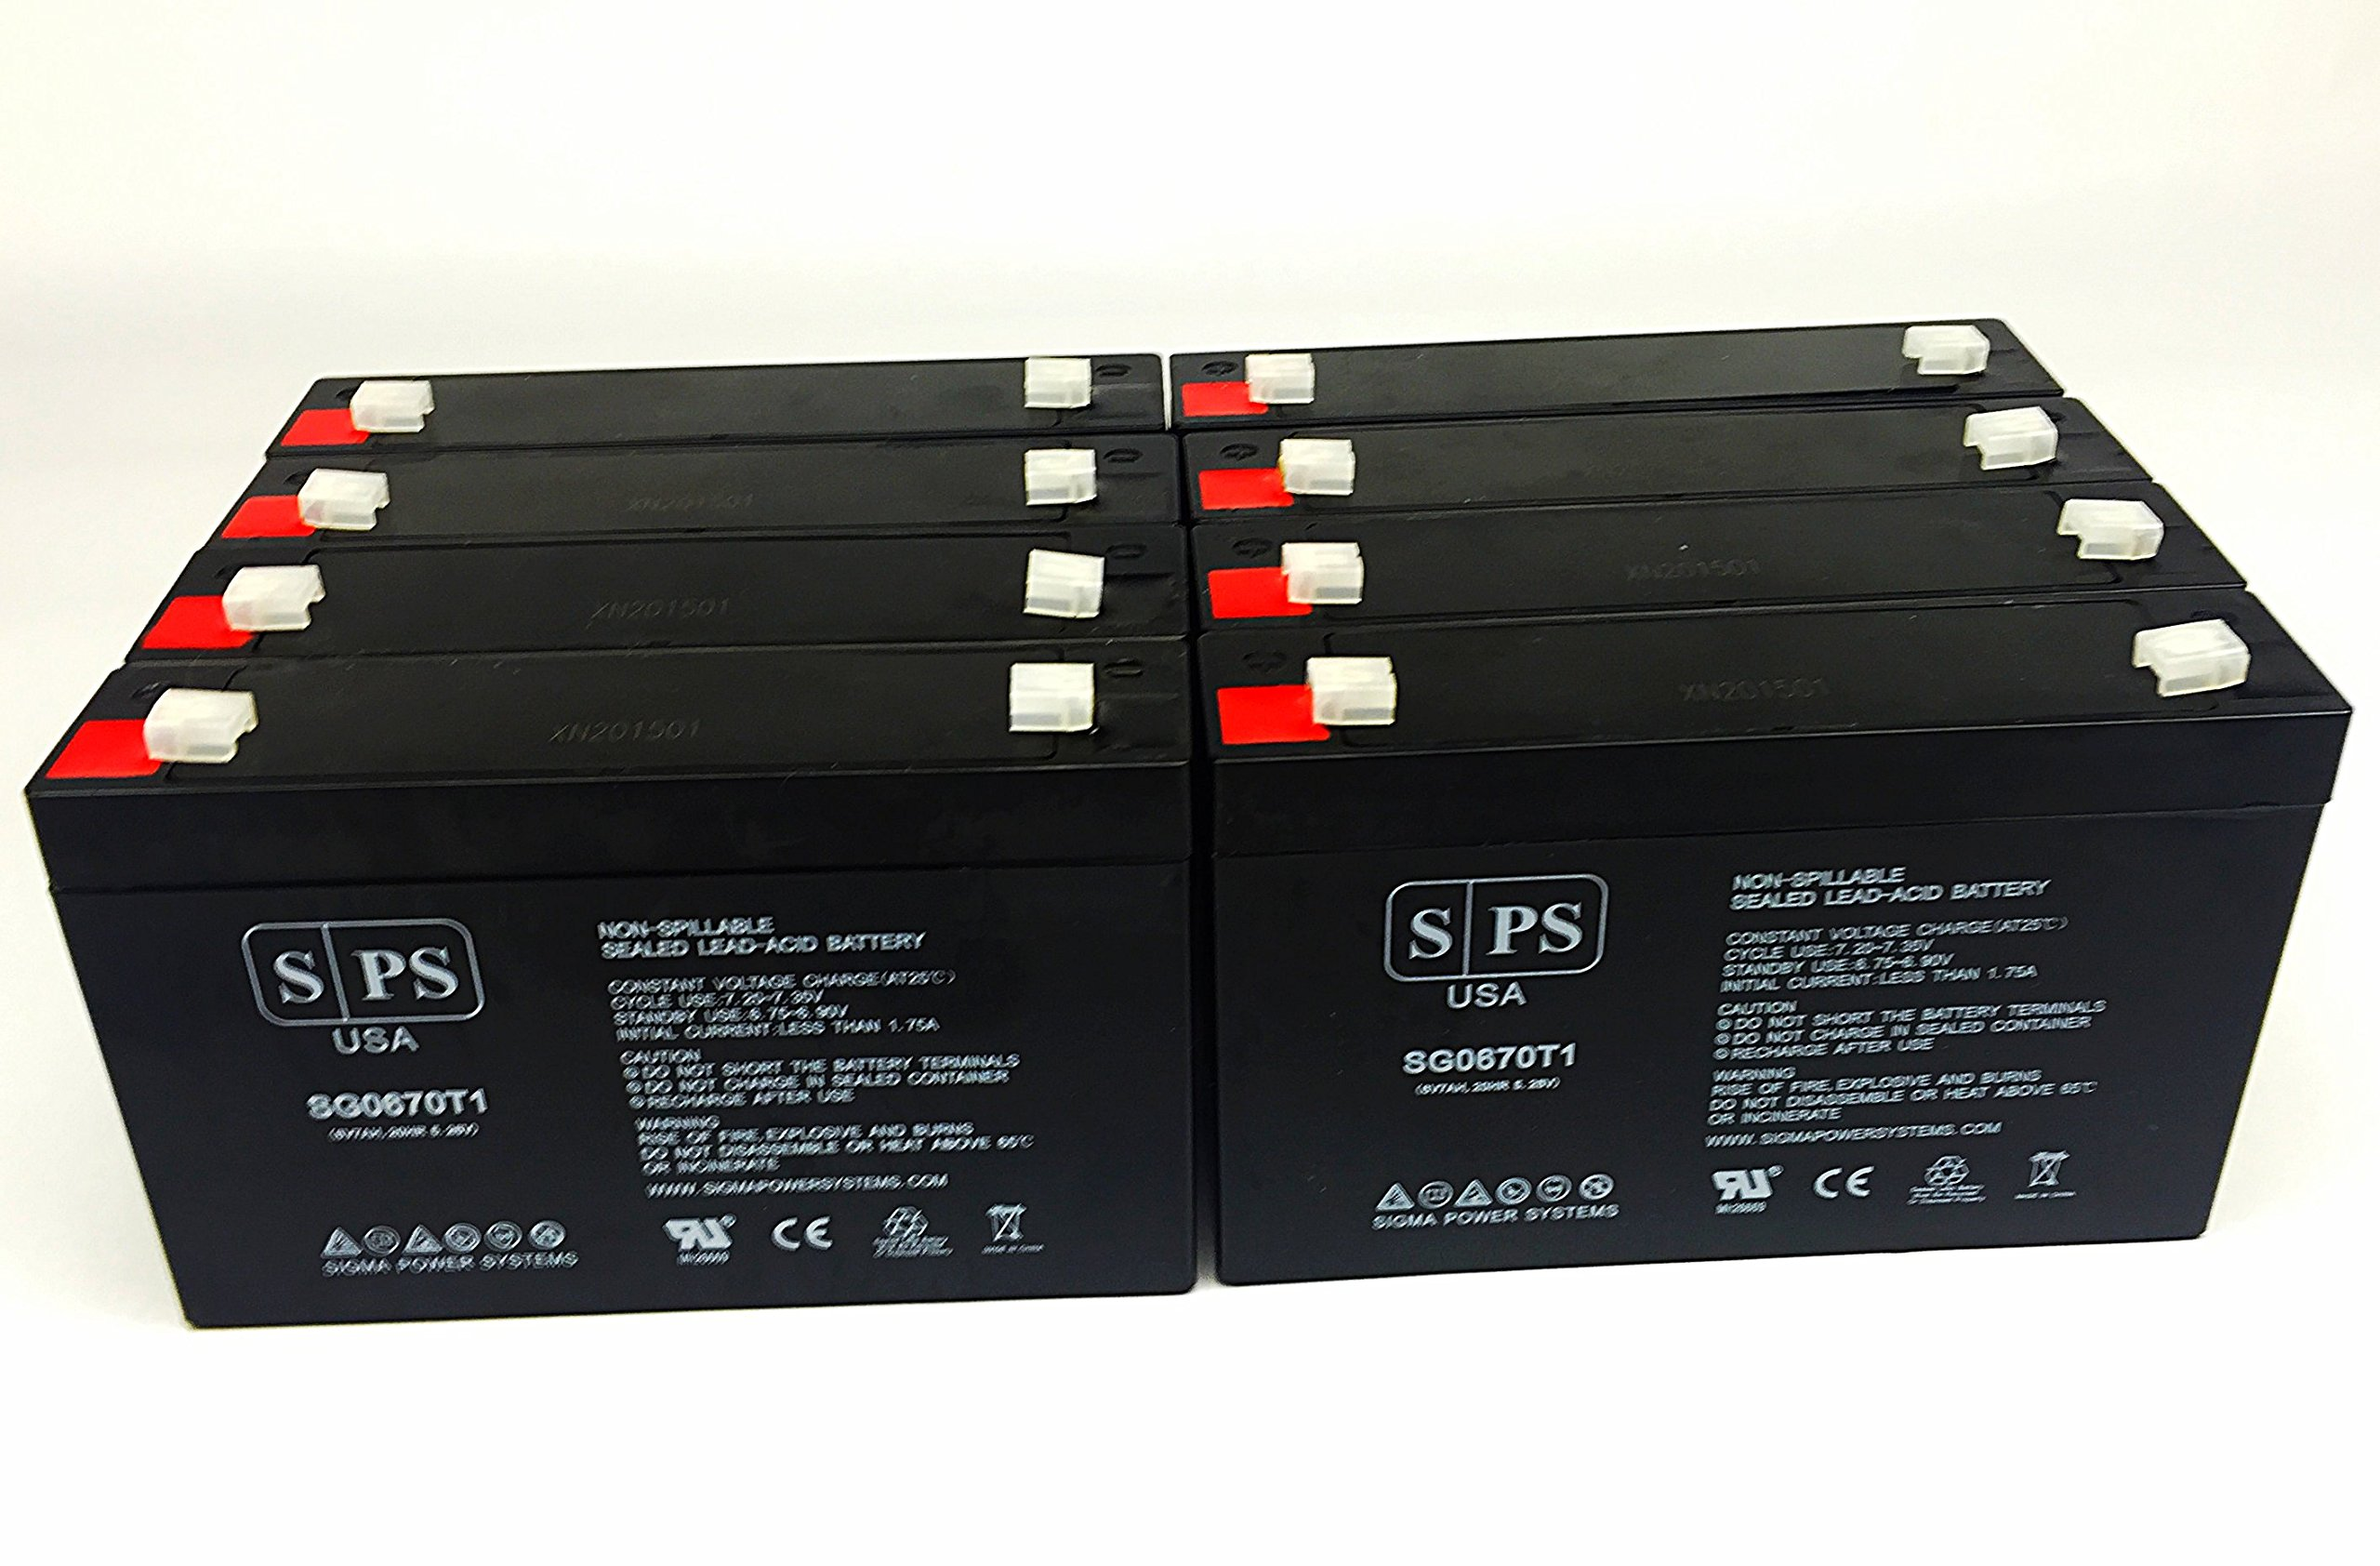 6V 7Ah Replacement Battery AJC-C7S - SPS Brand (8 Pack)